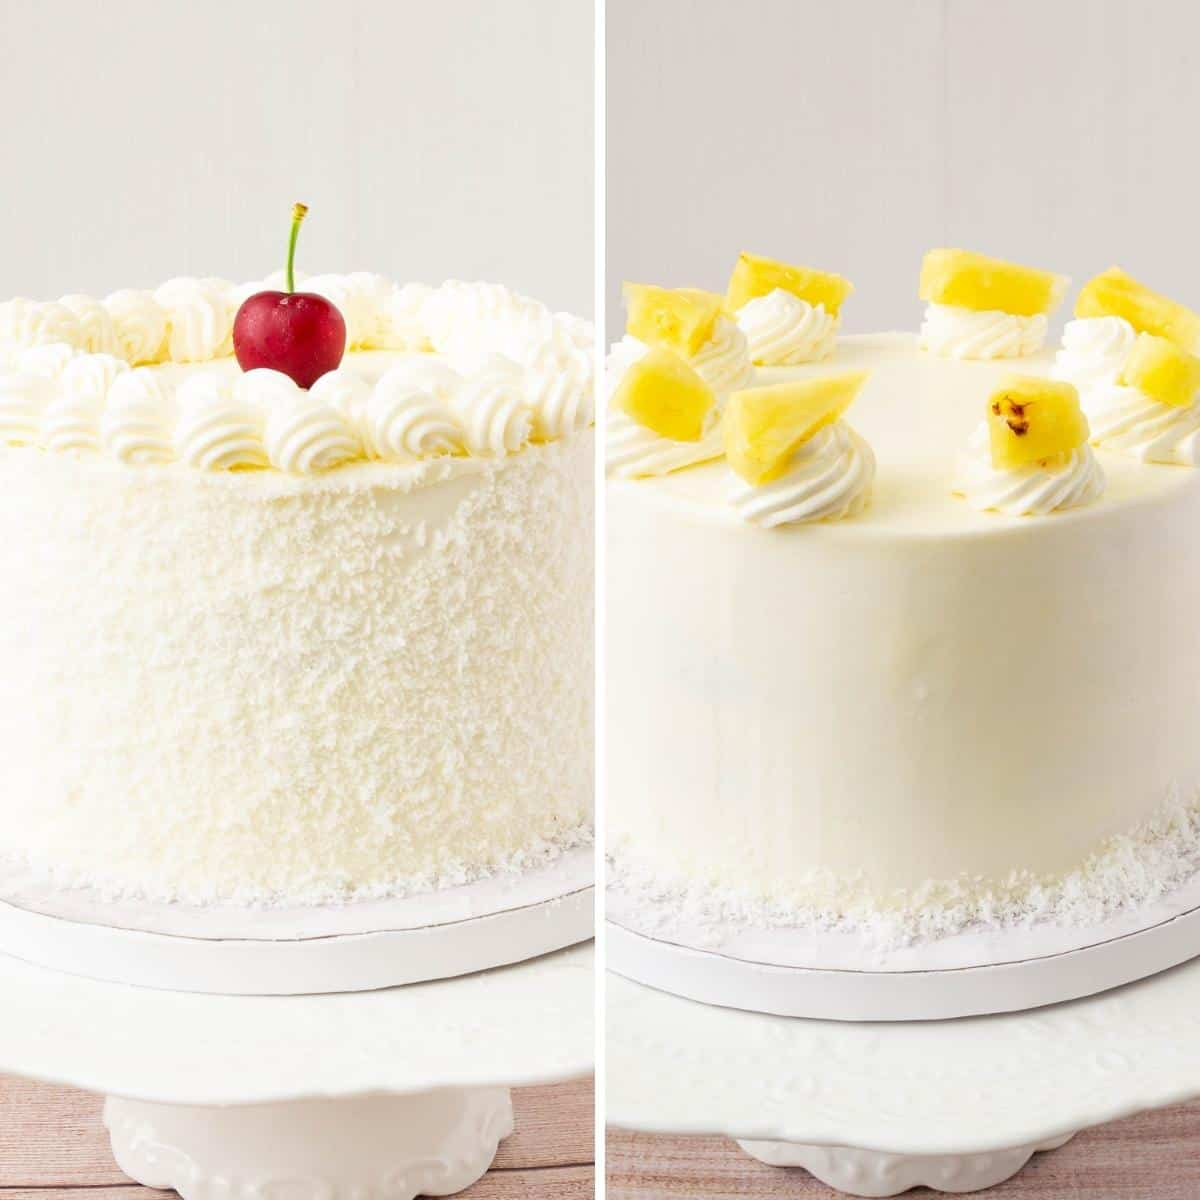 Two cakes frosted with Swiss meringue Buttercream.